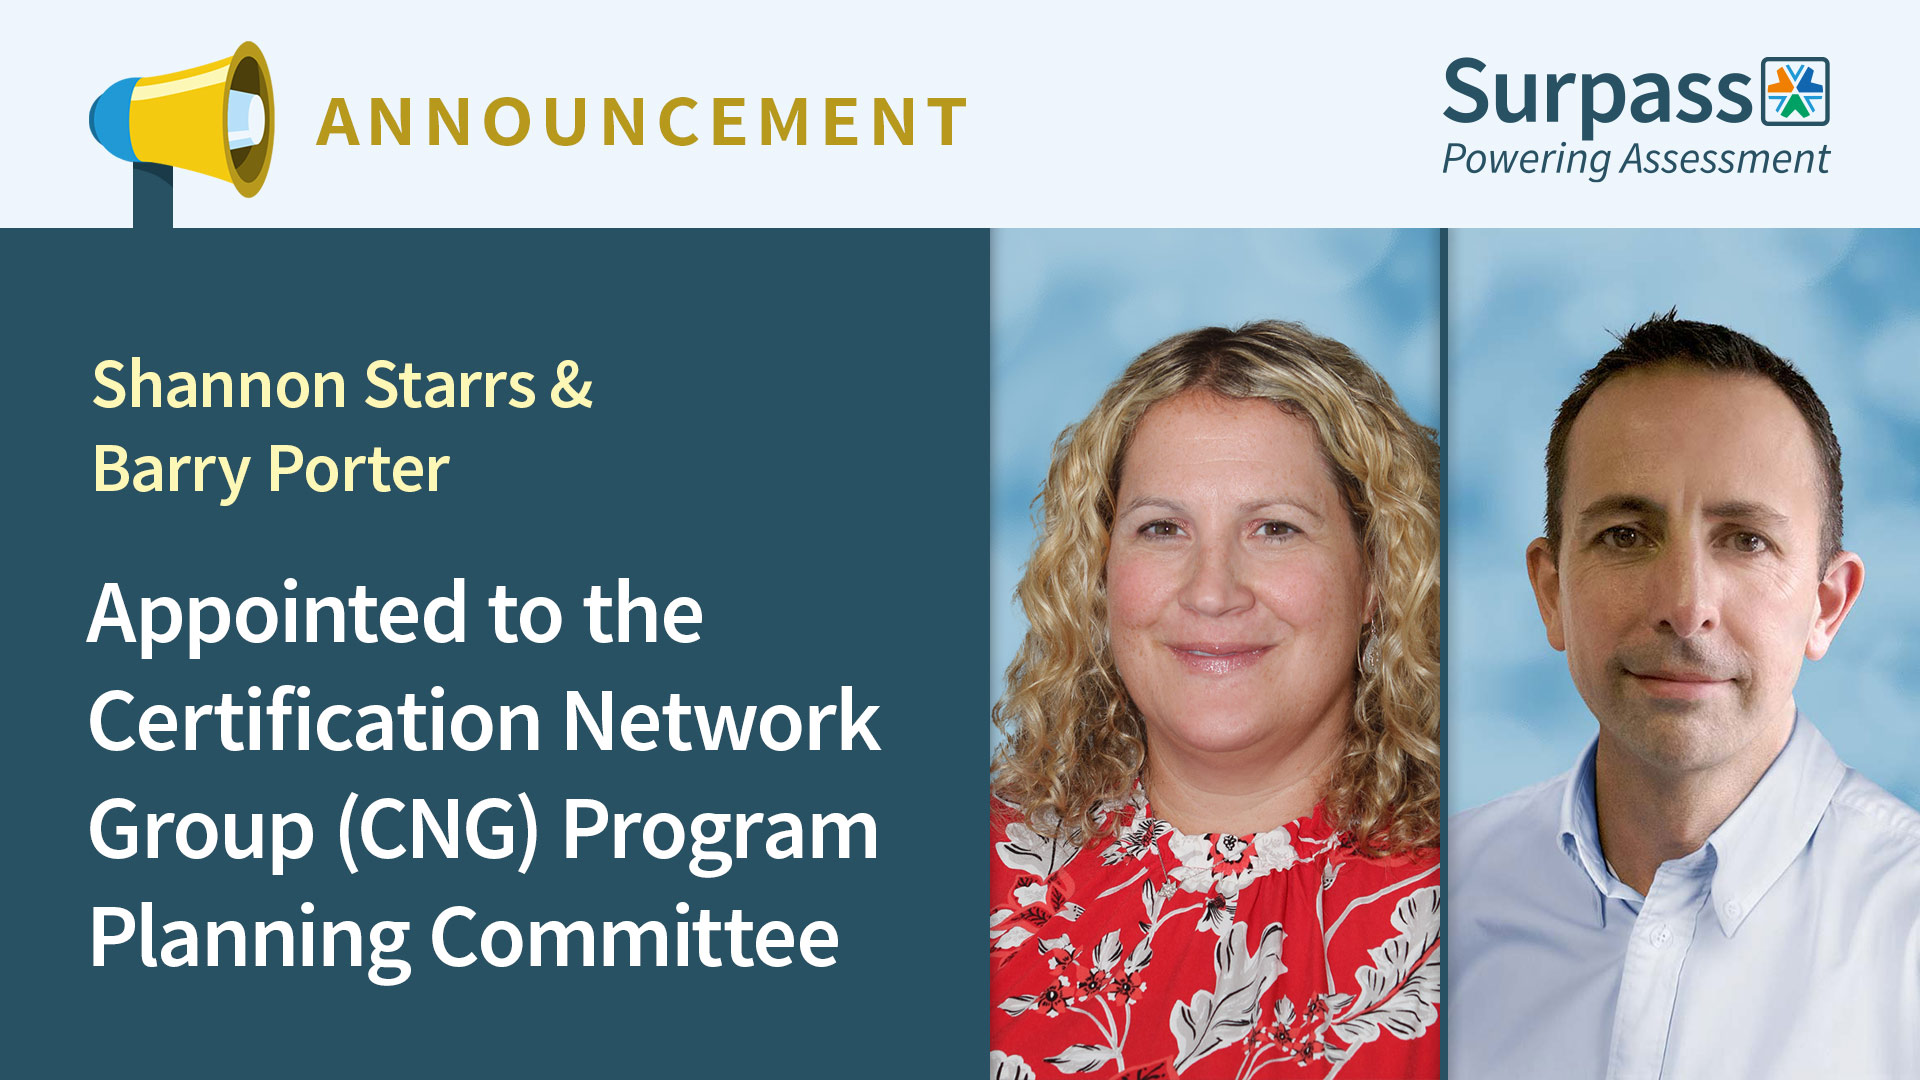 Shannon Starrs and Barry Porter appointed to the CNG Program Planning Committee